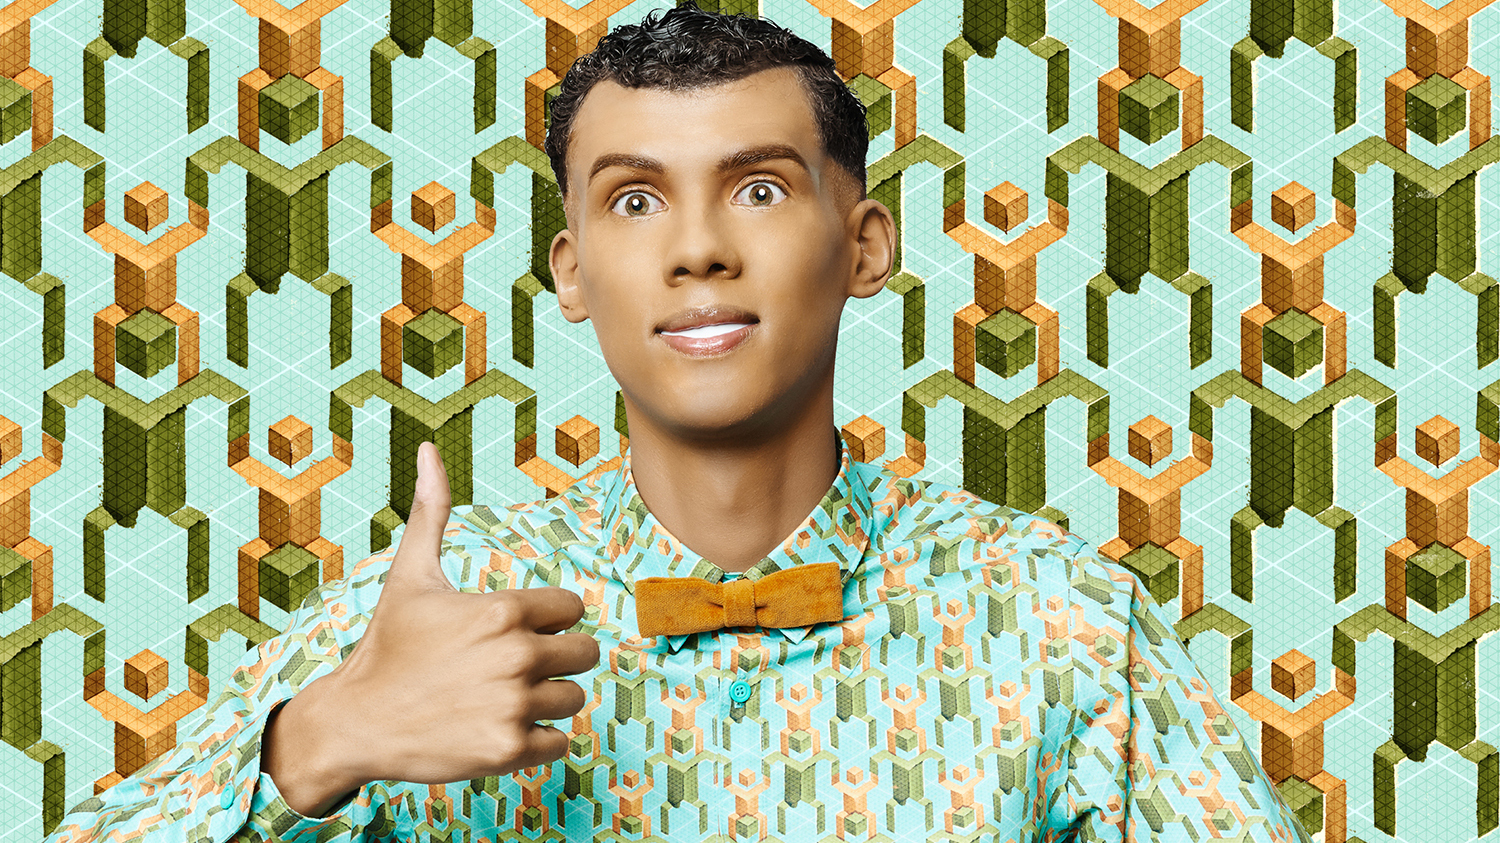 Video Game Car Wallpapers Stromae S Lyrics Show A Different Vision Of The World Npr